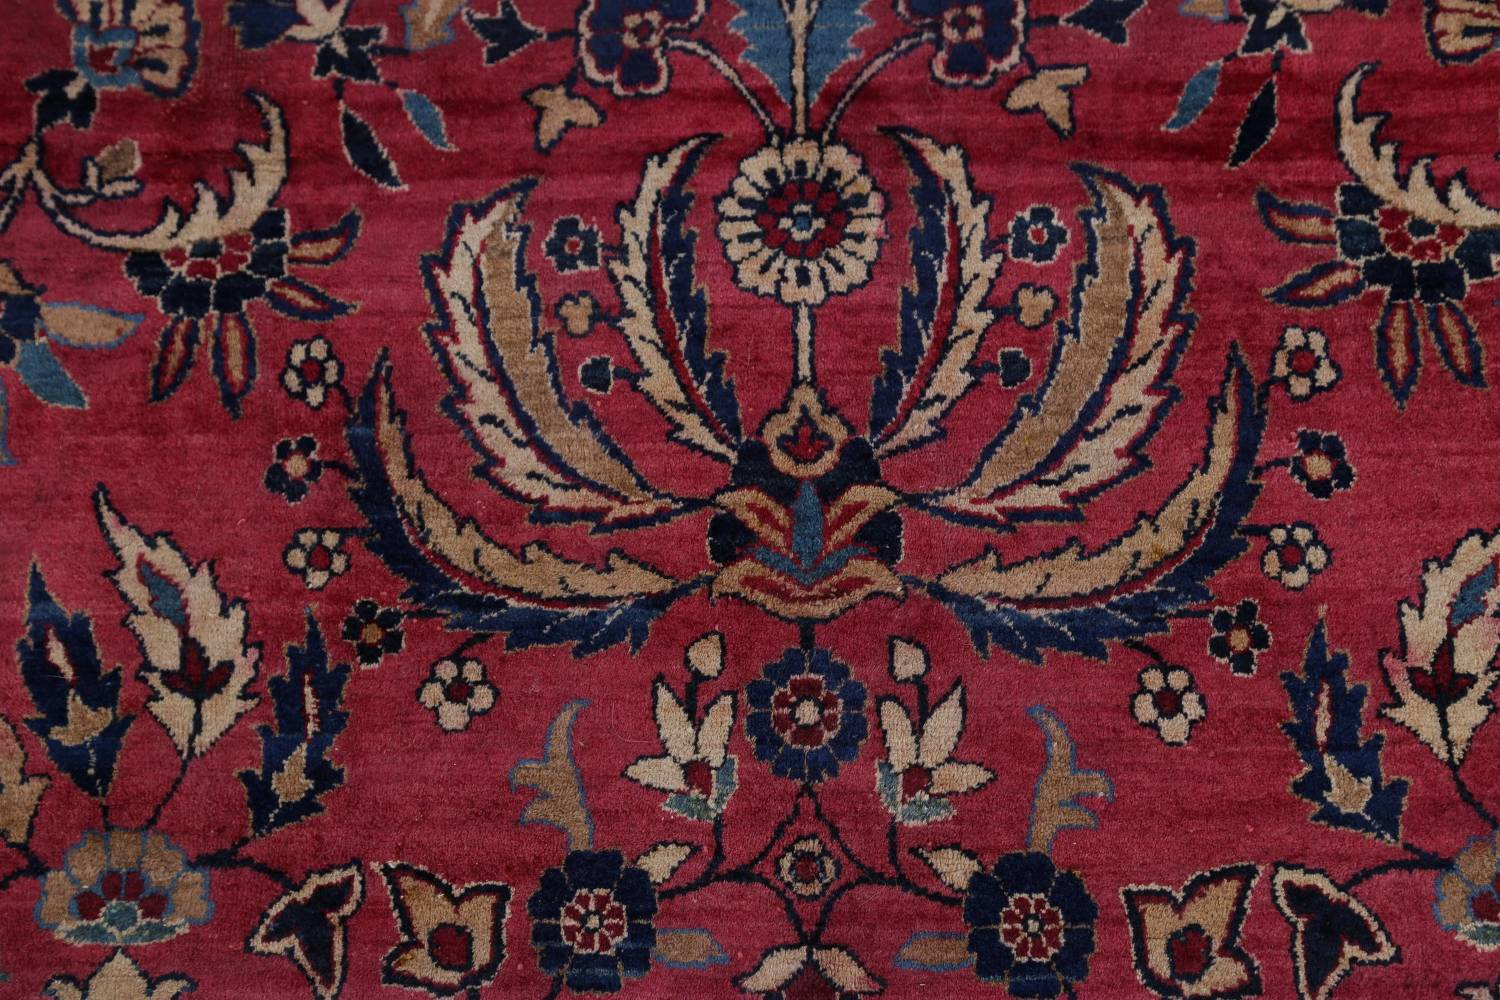 Pre-1900 Antique Floral Sultanabad Persian Hand-Knotted 12x18 Wool Rug image 8